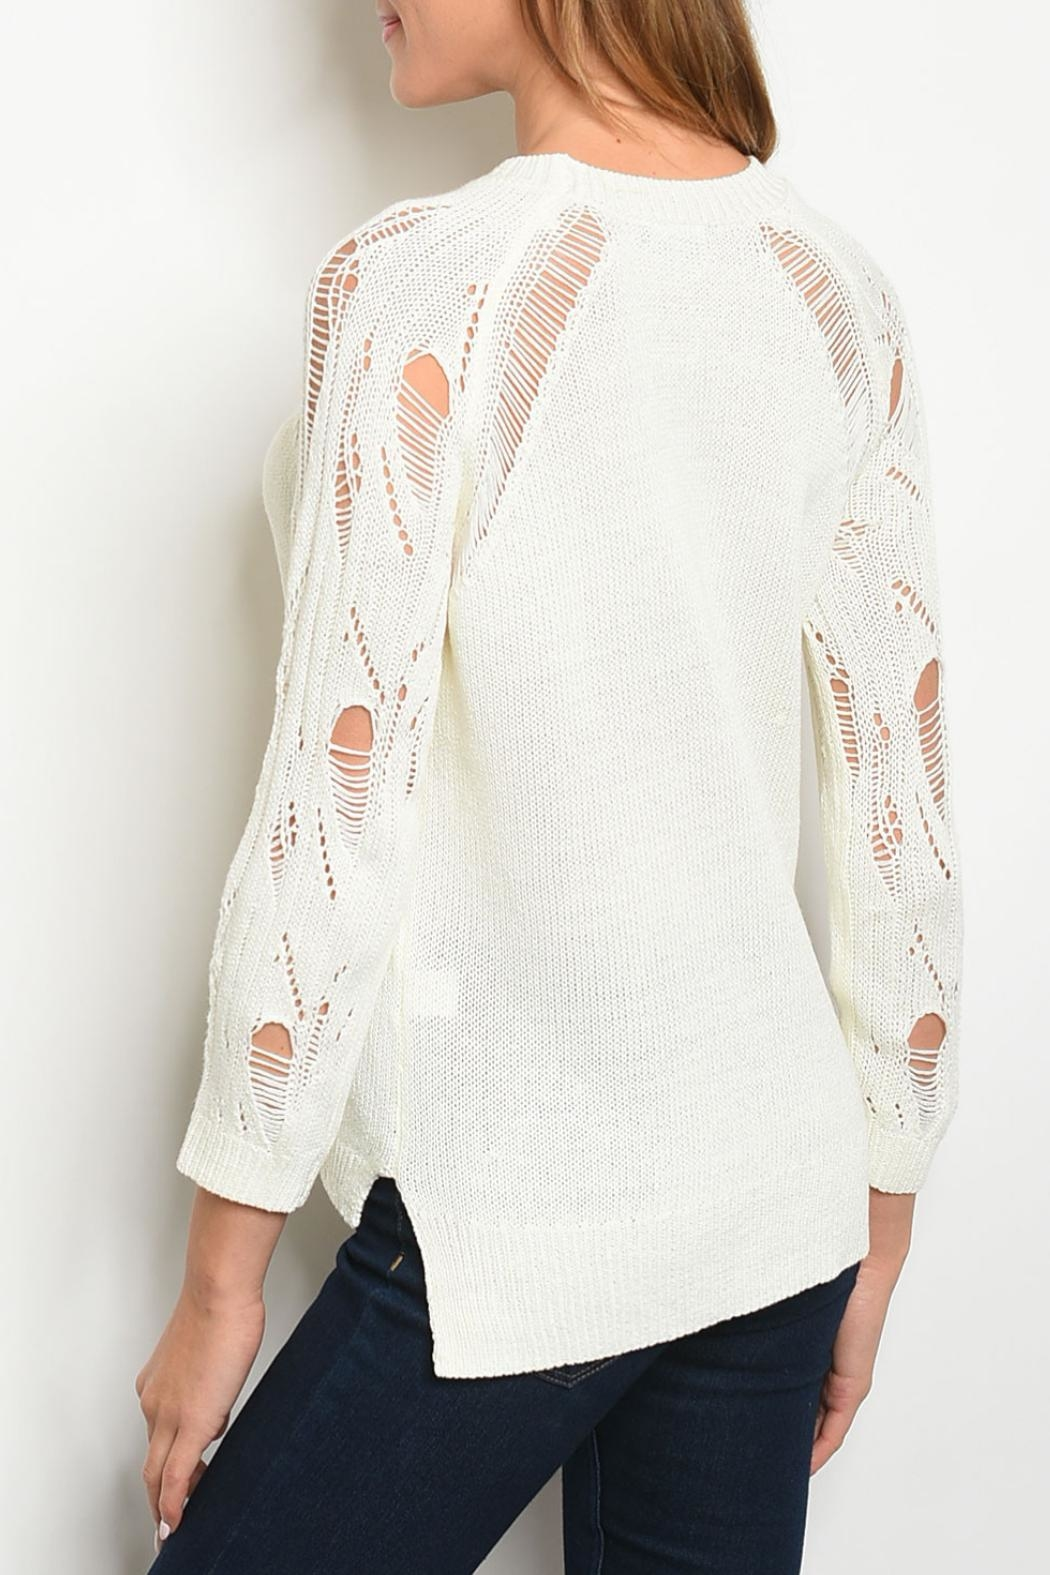 Papermoon Ivory Distressed Sweater - Front Full Image